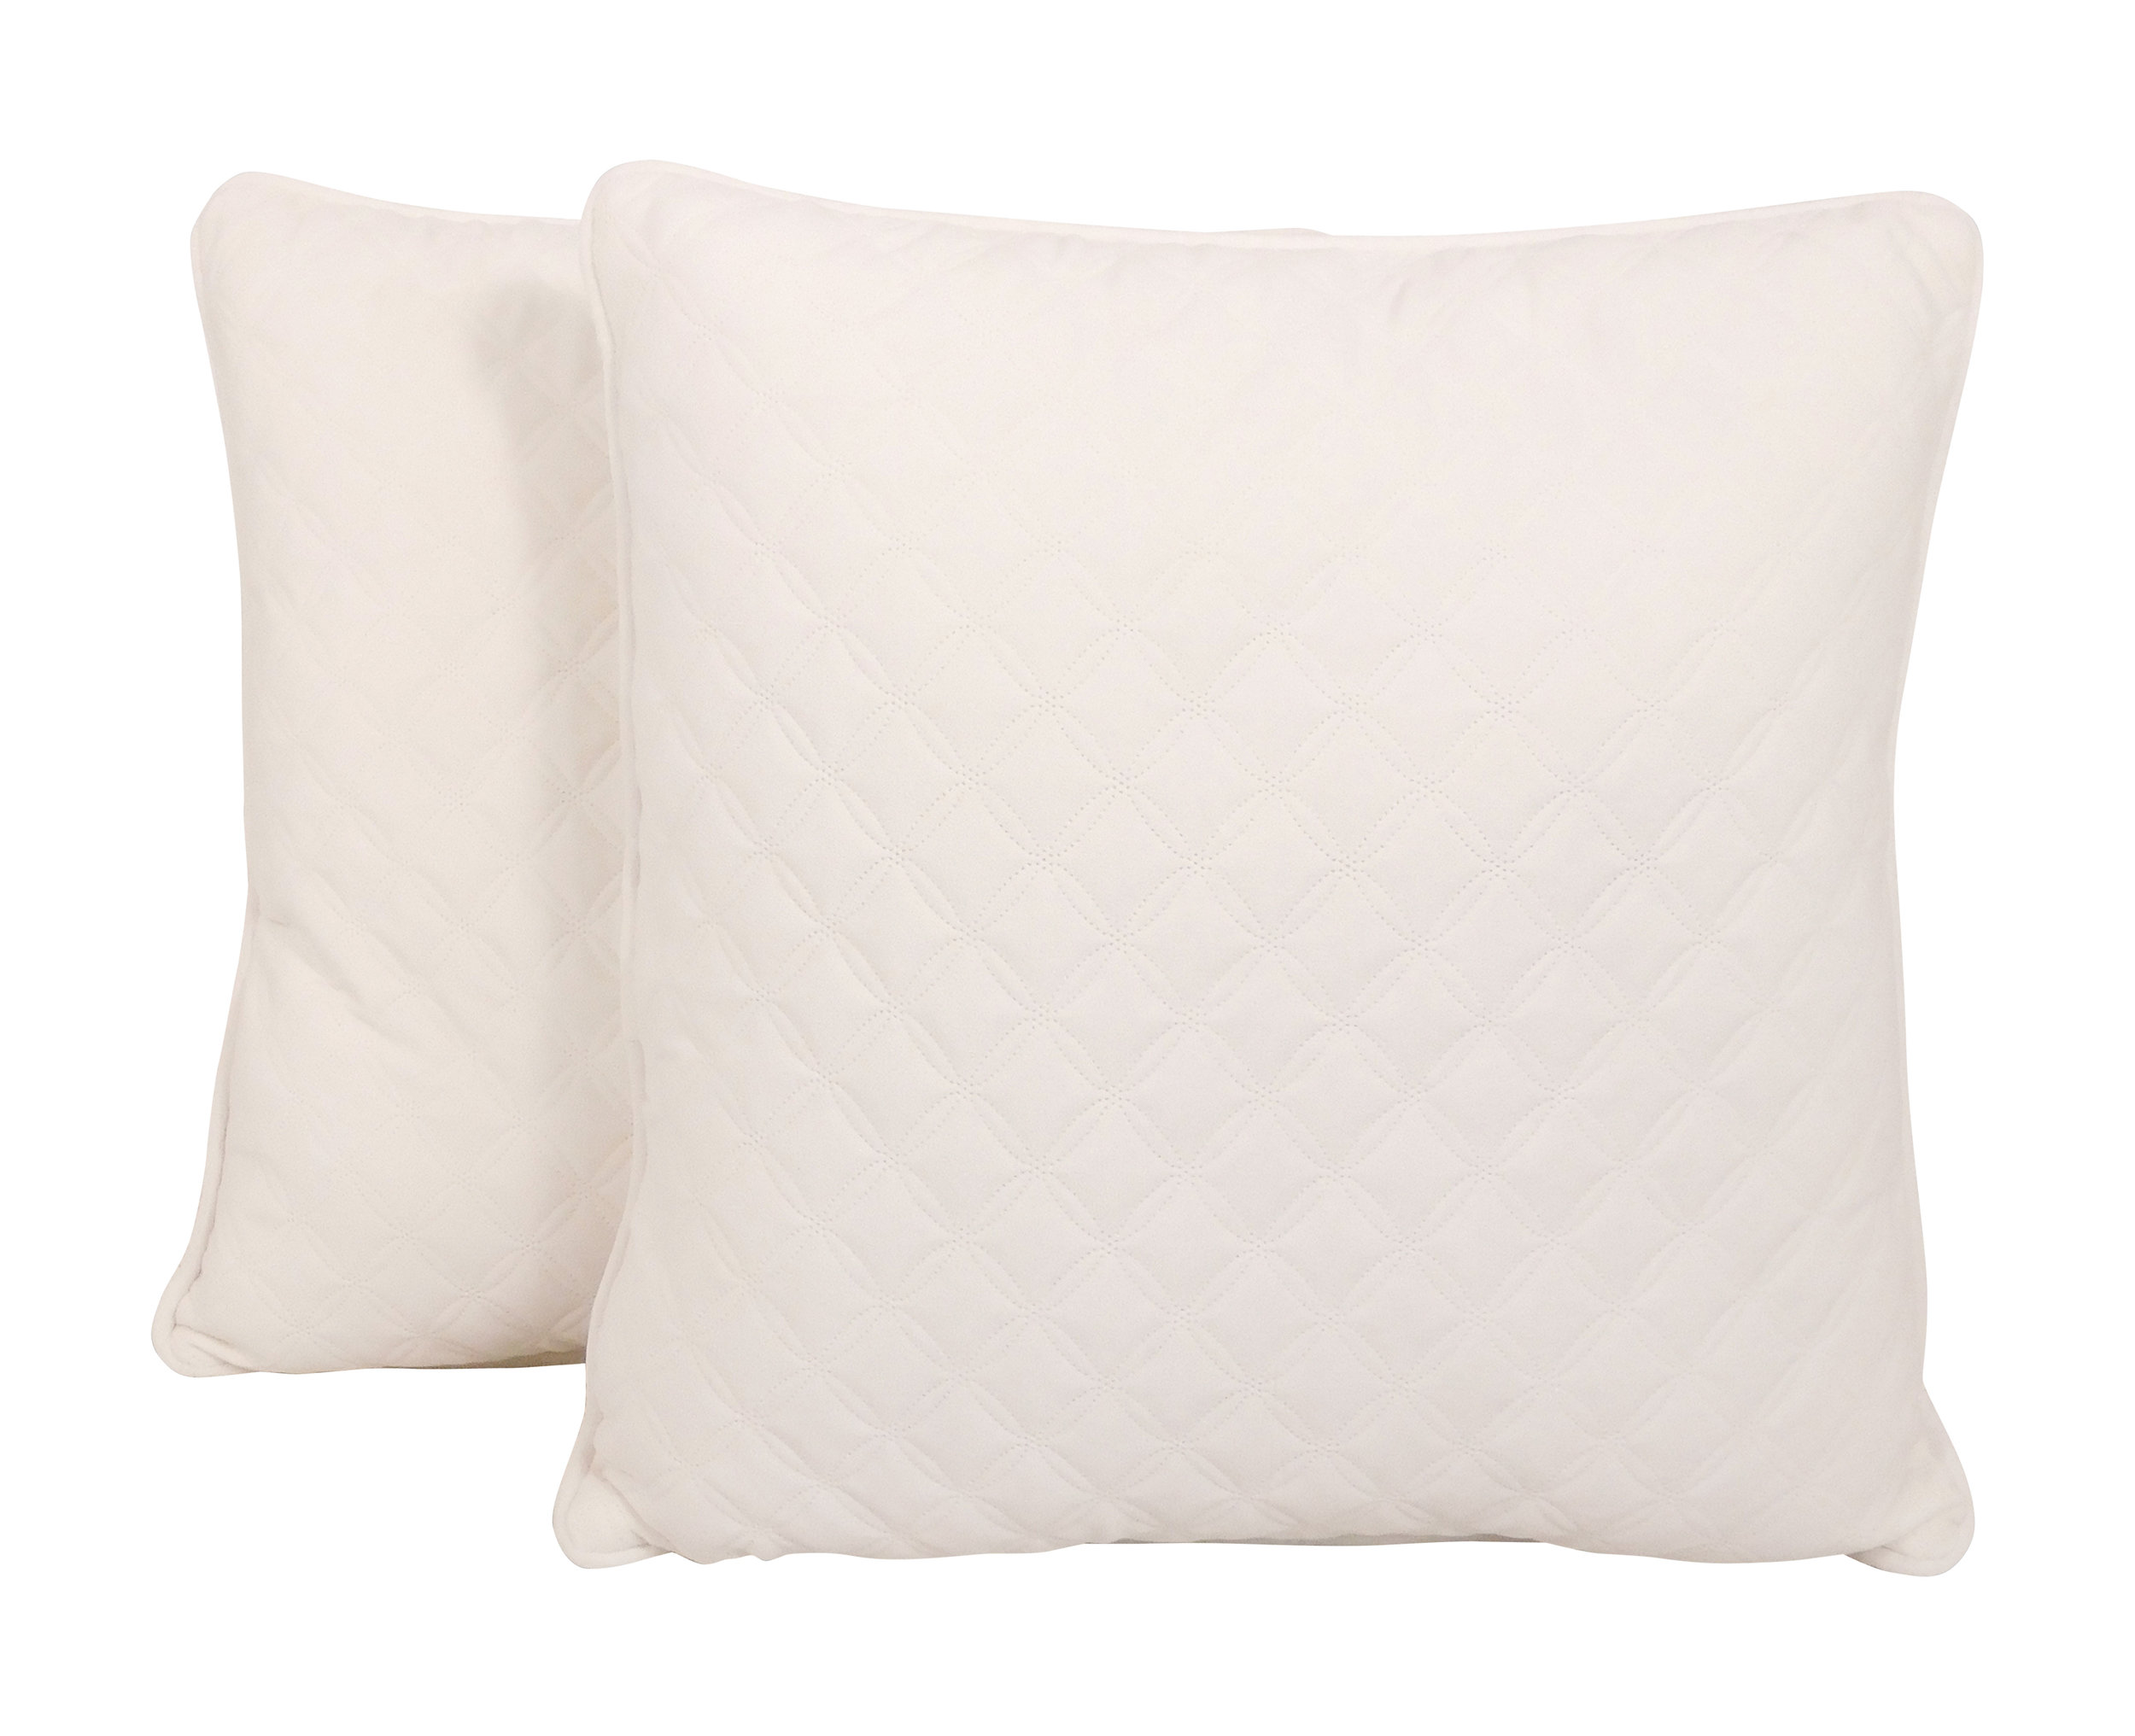 2 pack quilted pillows.jpg